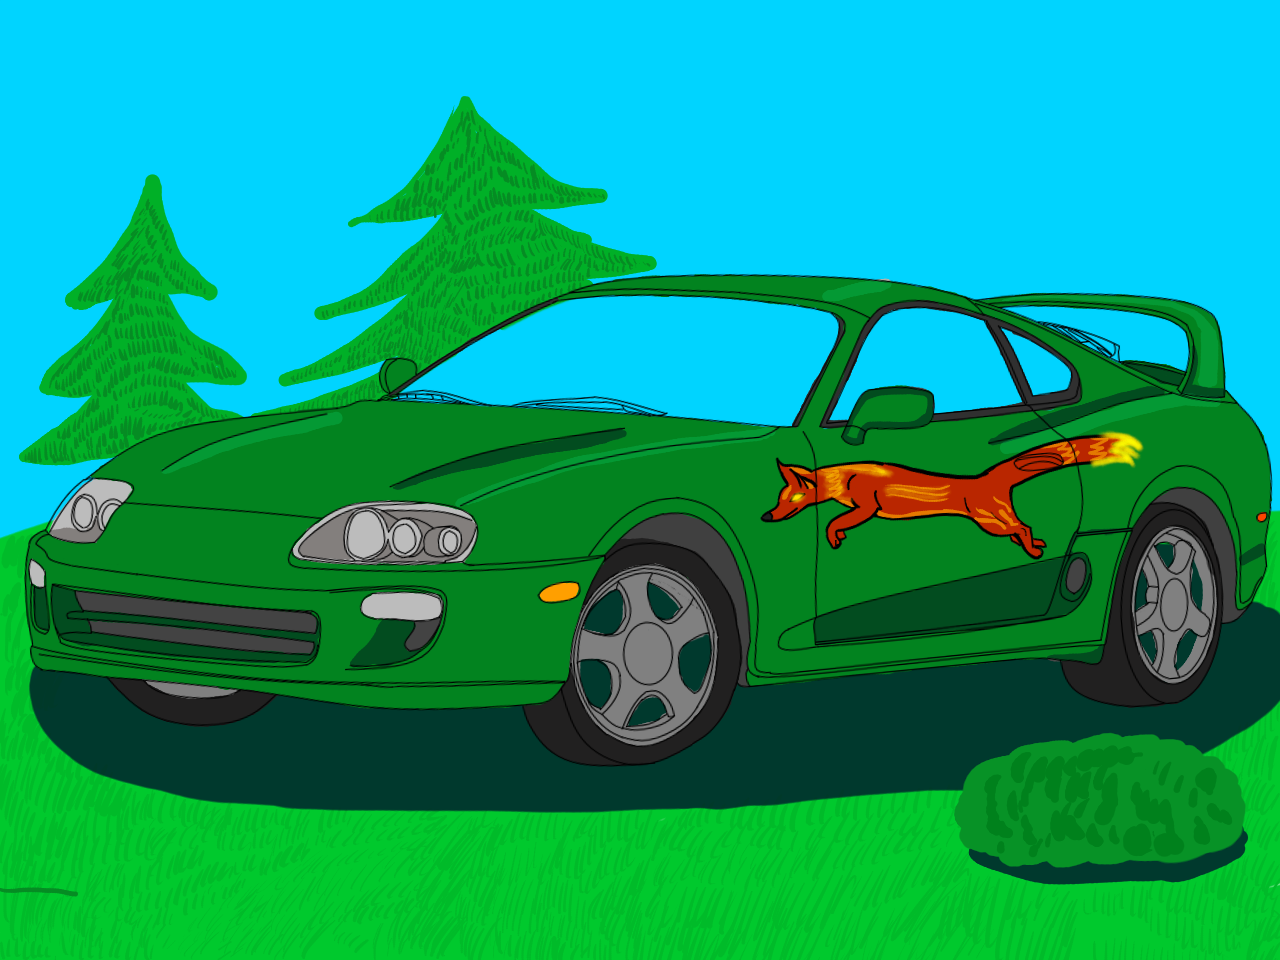 On A Toyota Supra Mk.IV I Made A Little Fire Fox In A Forst